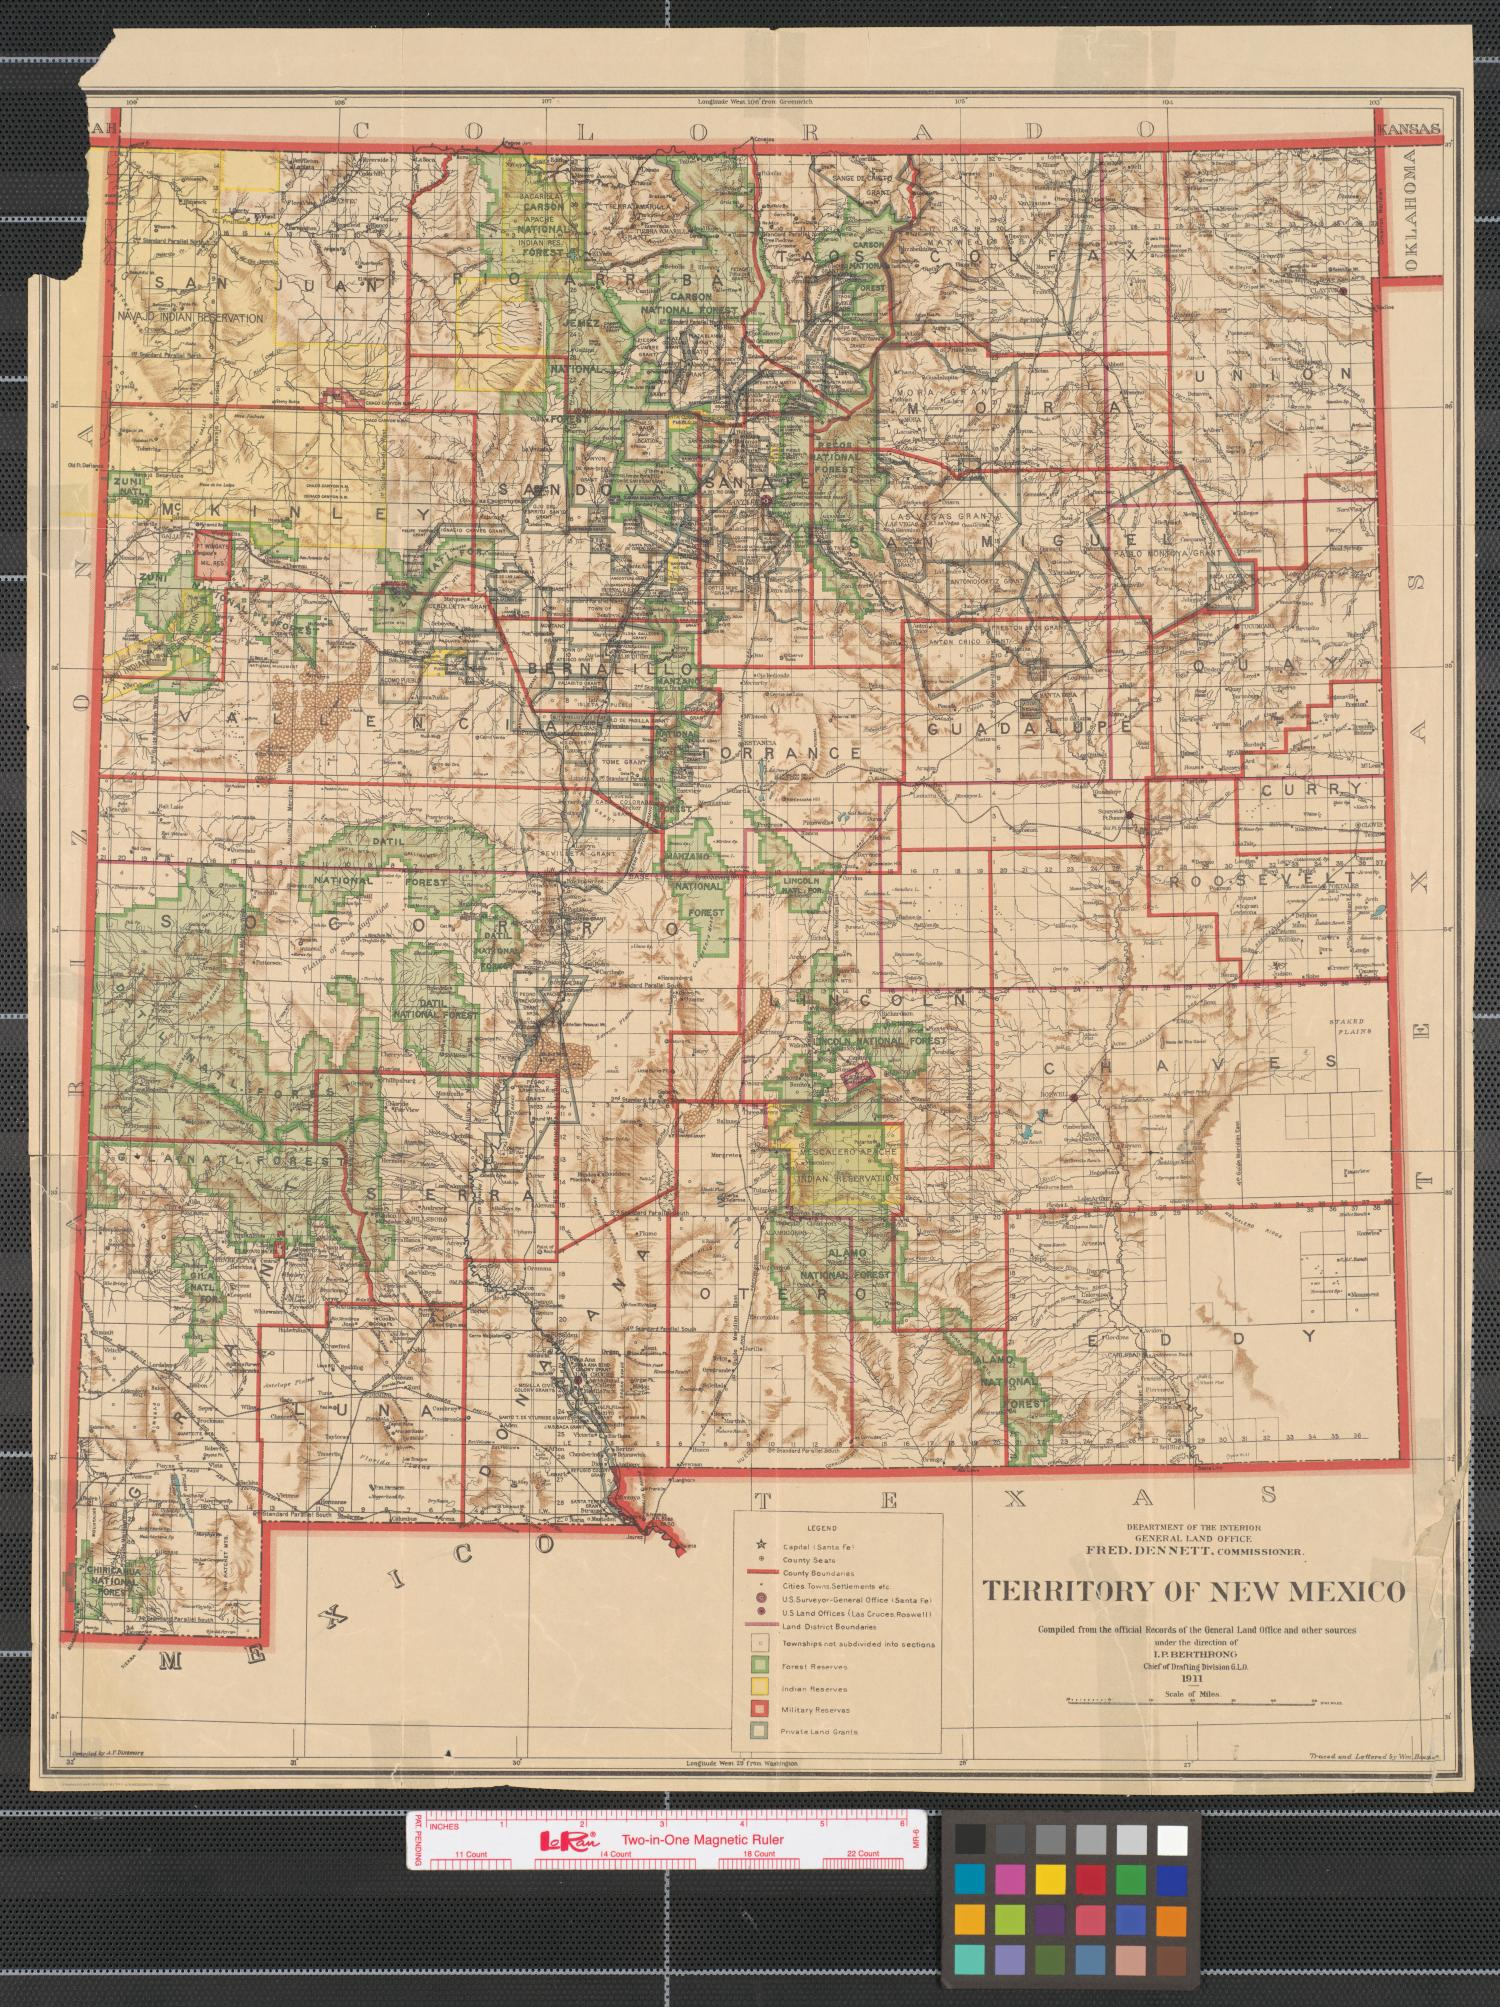 Native American Physical Features >> Territory of New Mexico : compiled from the official records of the General Land Office and ...